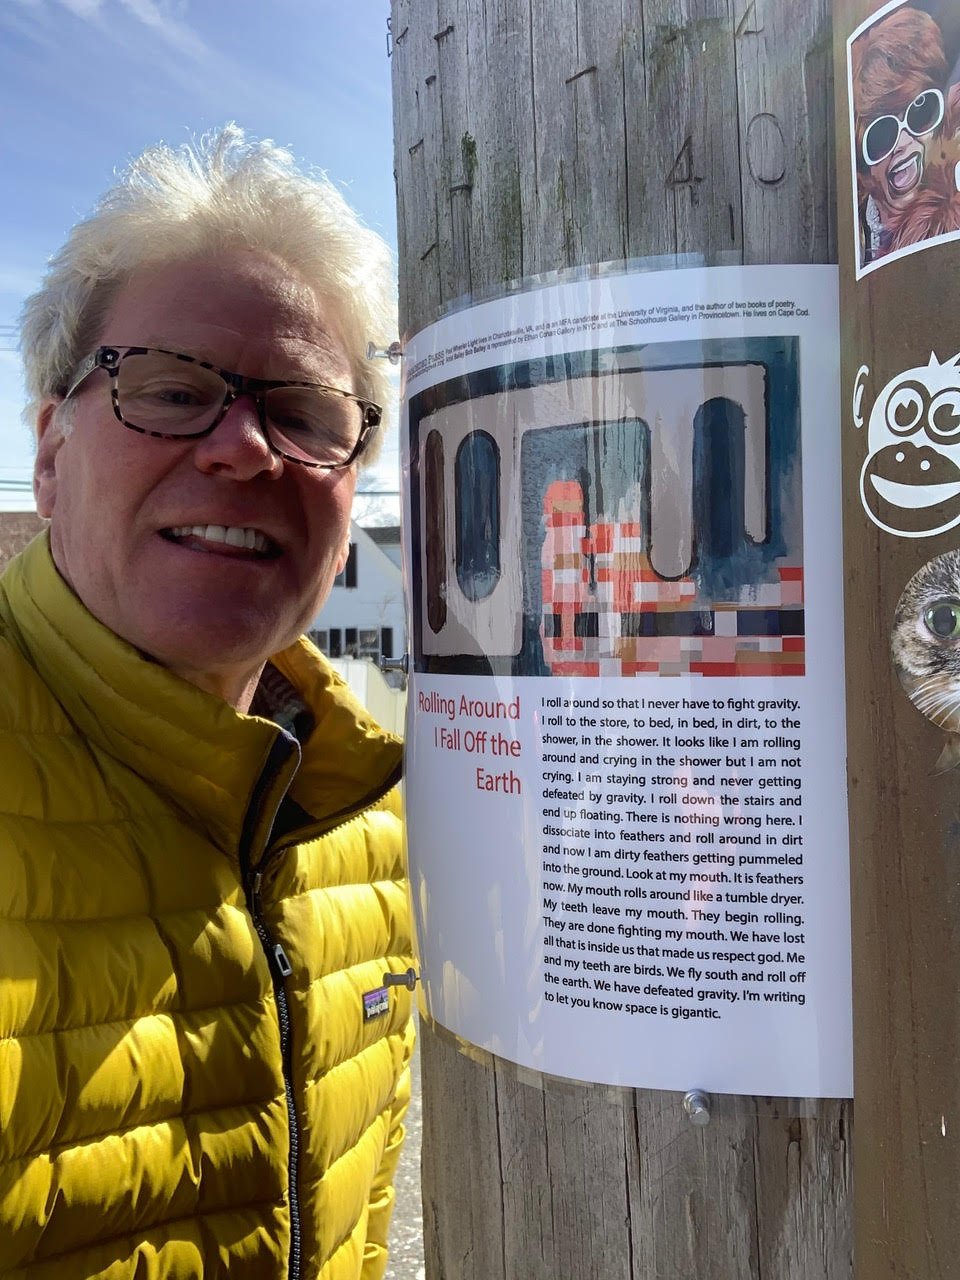 The artist Bailey Bob Bailey standing left to his broadside posted on a telephone pole pasted with quirky stickers on a sunny day.